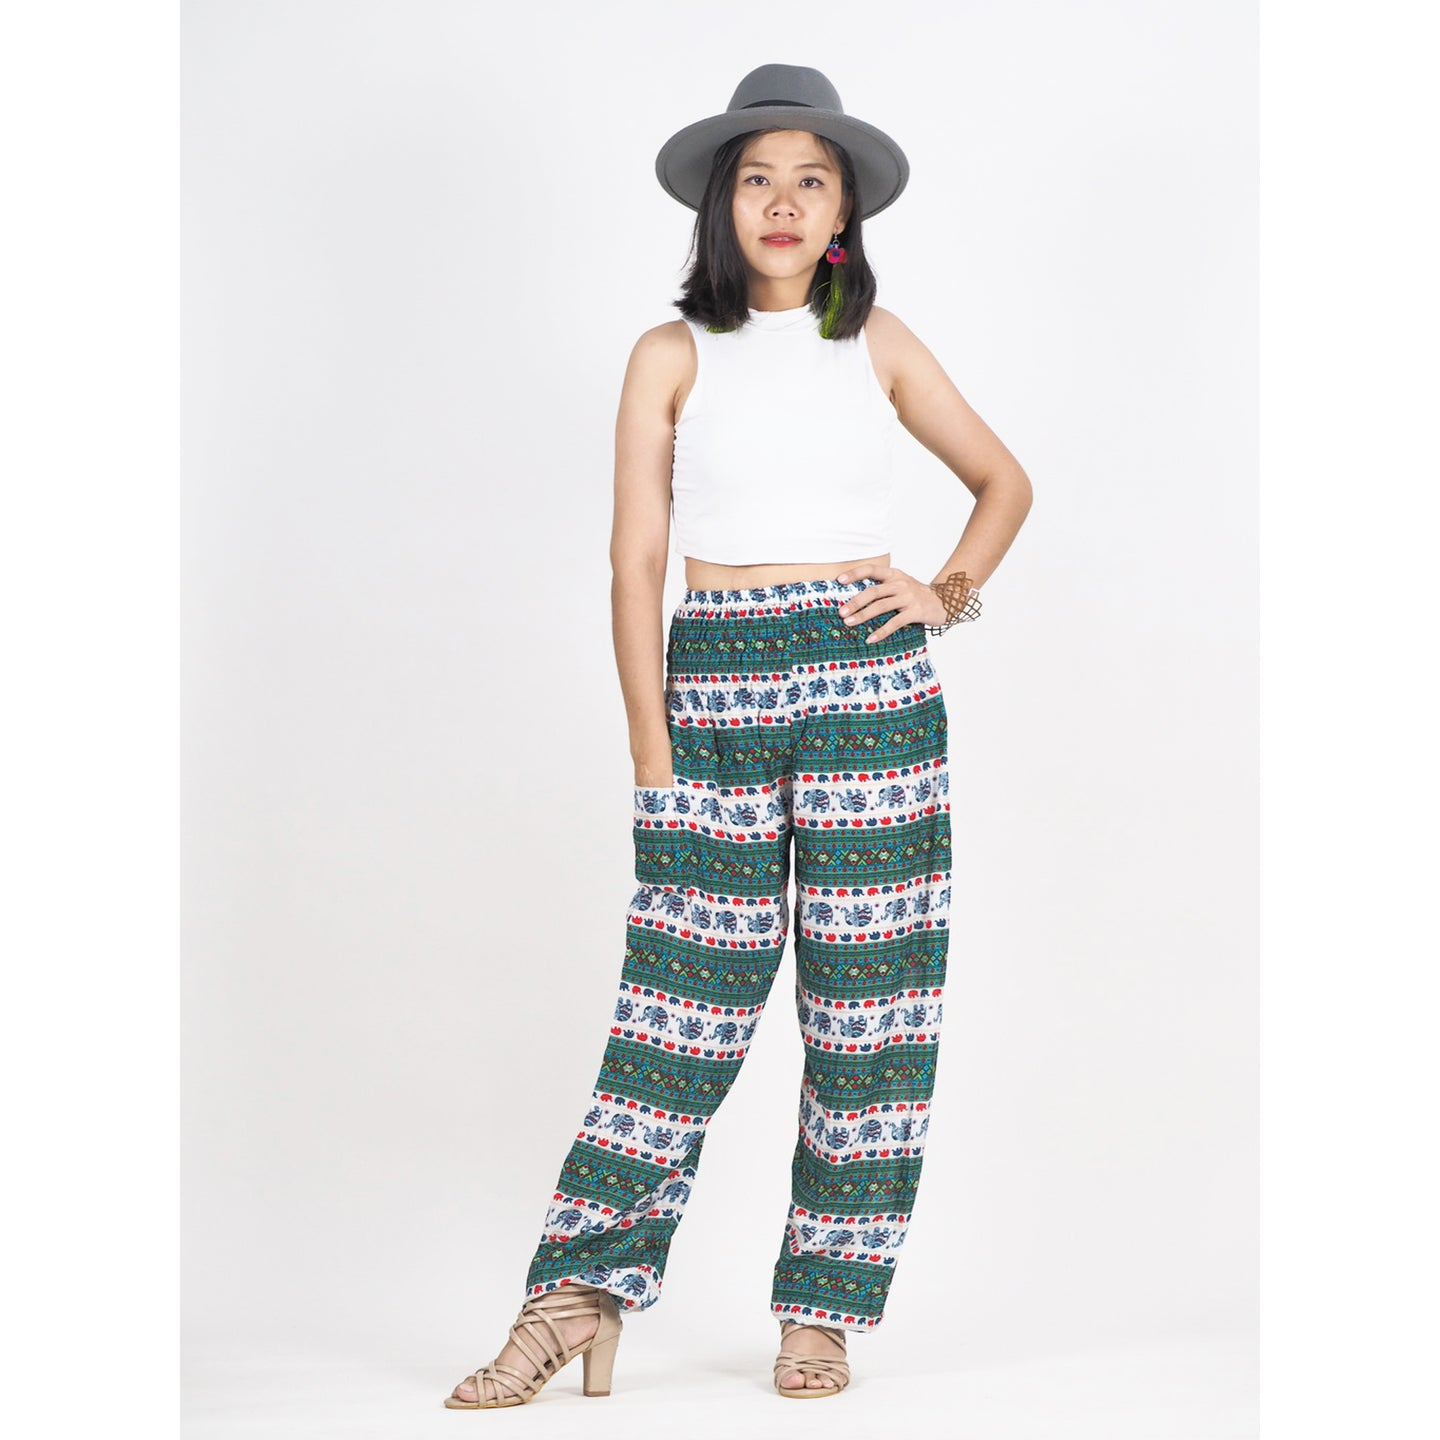 Cute elephant stripes 142 women harem pants in Green PP0004 020142 03